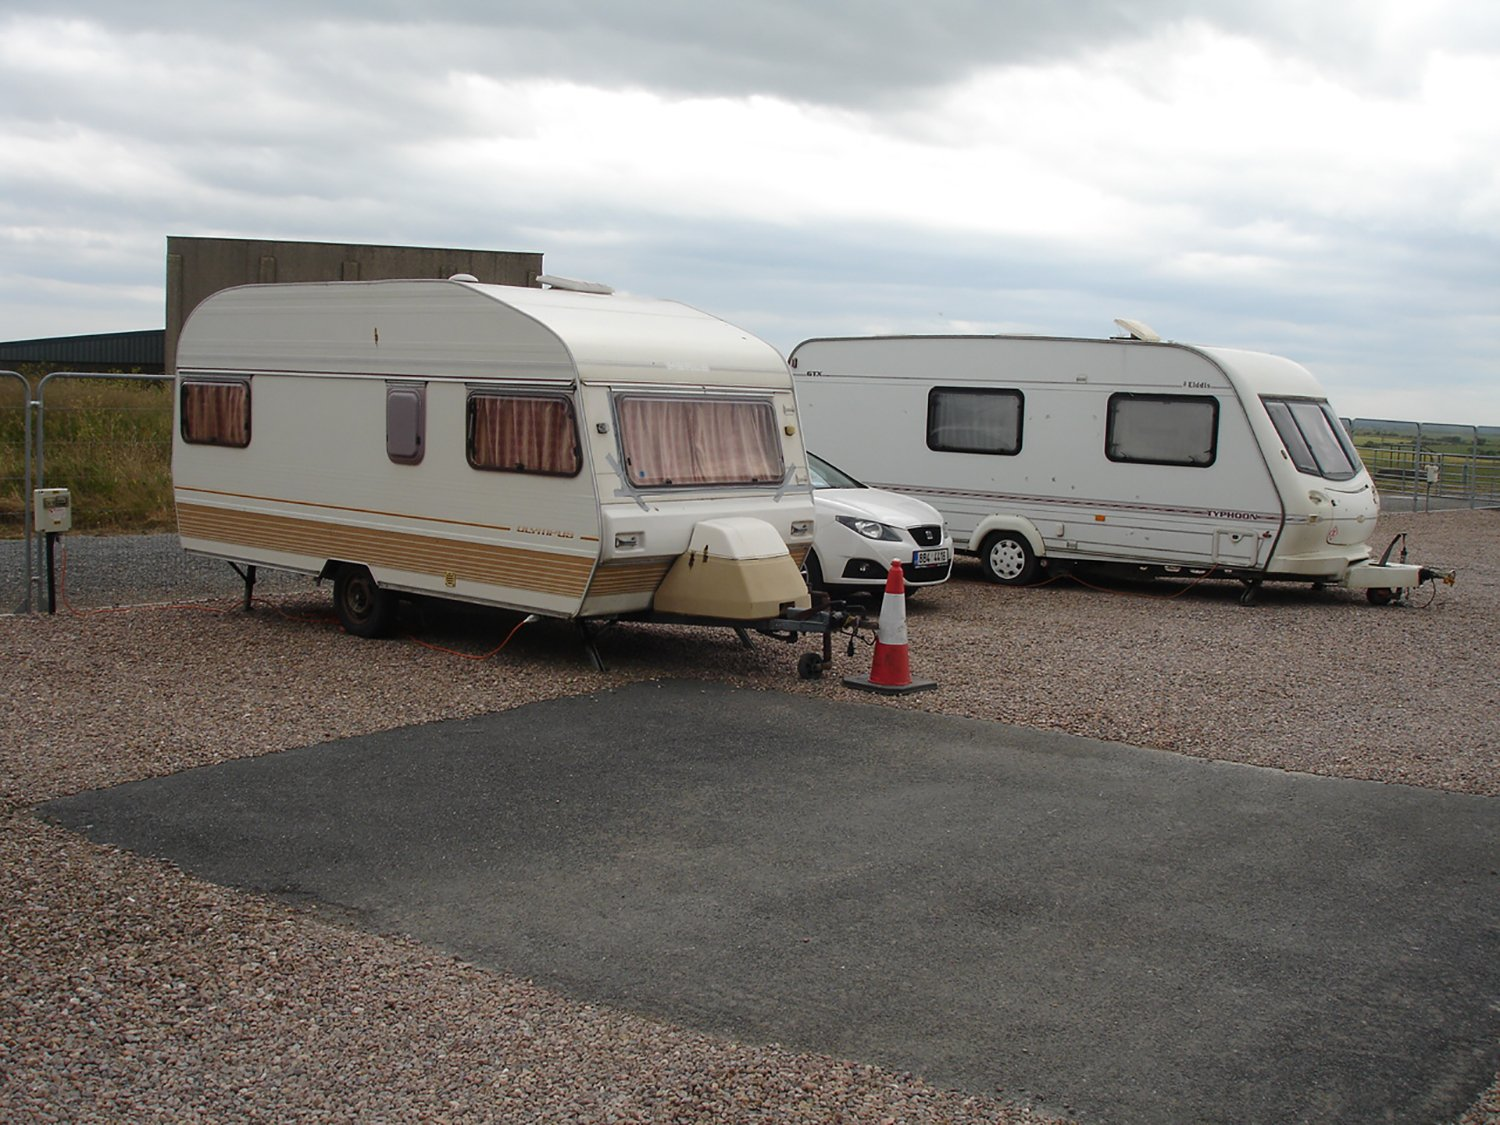 2 caravans and a car in a empty parking lot